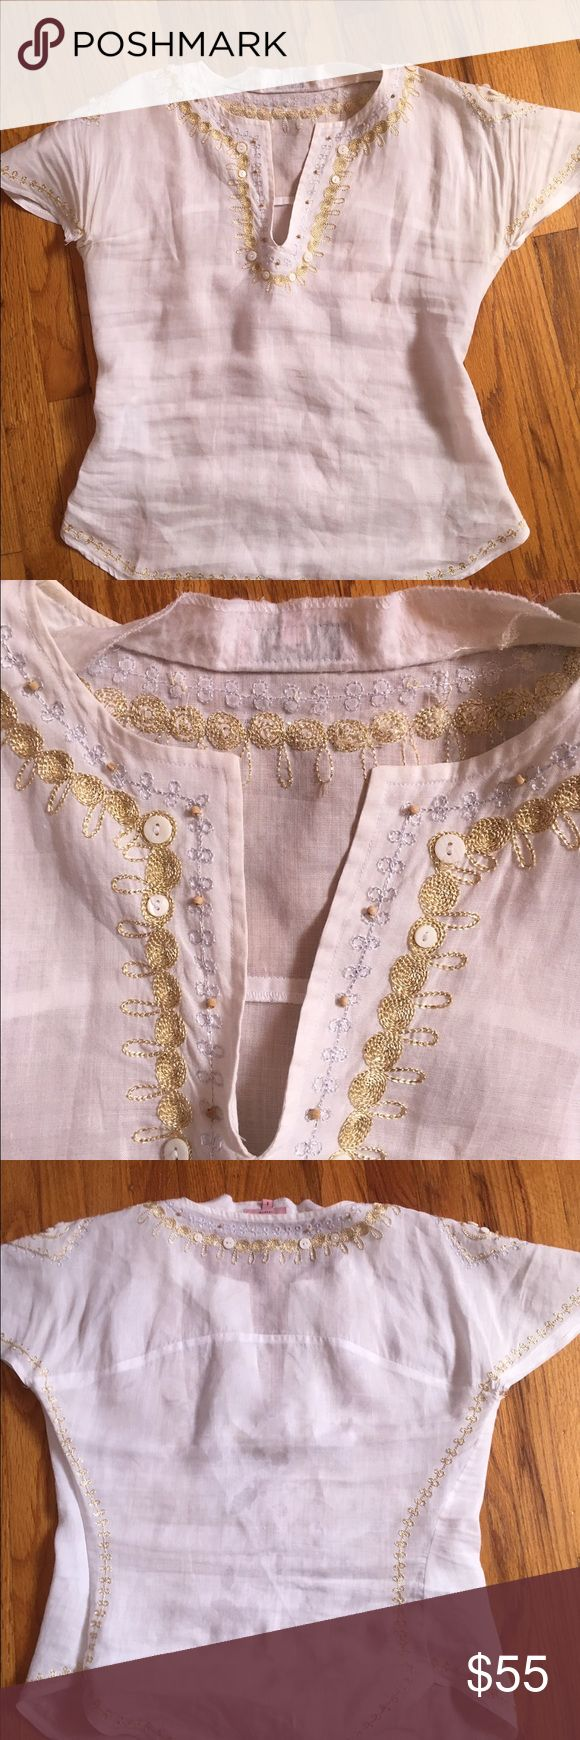 Ted Baker linen top shirt size small 2 short sleeve white linen shirt by Ted Baker size 2/small.  has a small fixable rip at left underarm that can be sewn. Baker by Ted Baker Tops